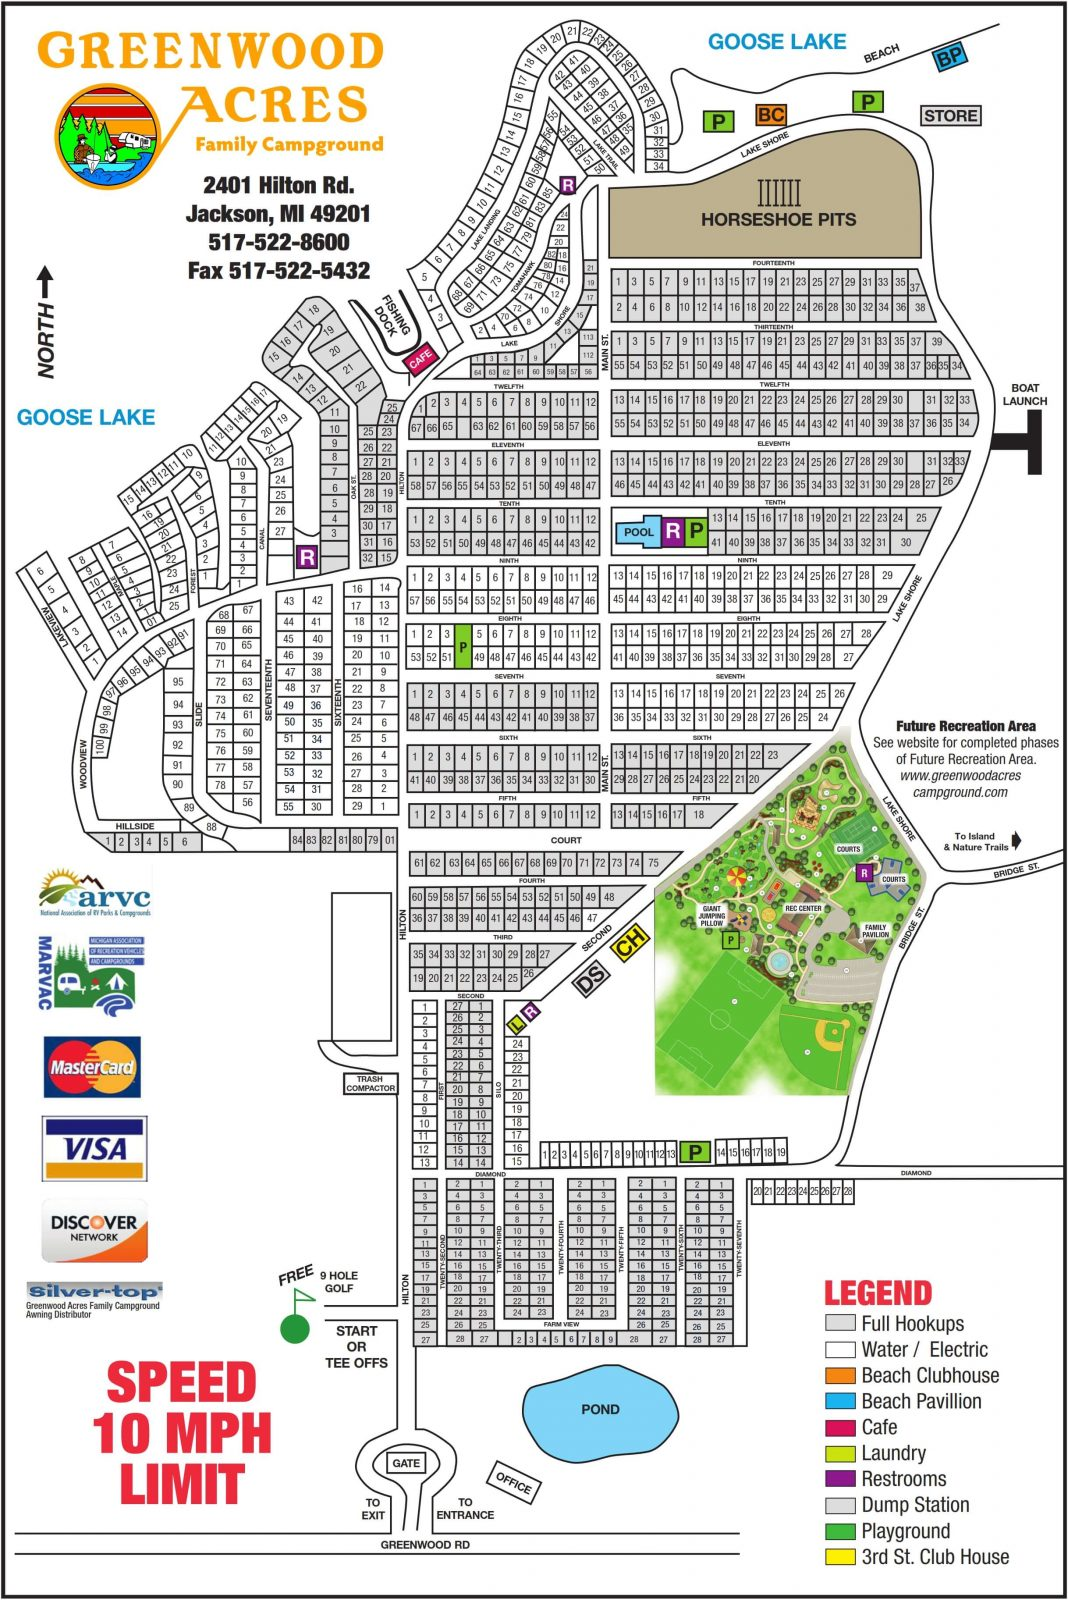 Sitemap - Greenwood Acres Family Campground on